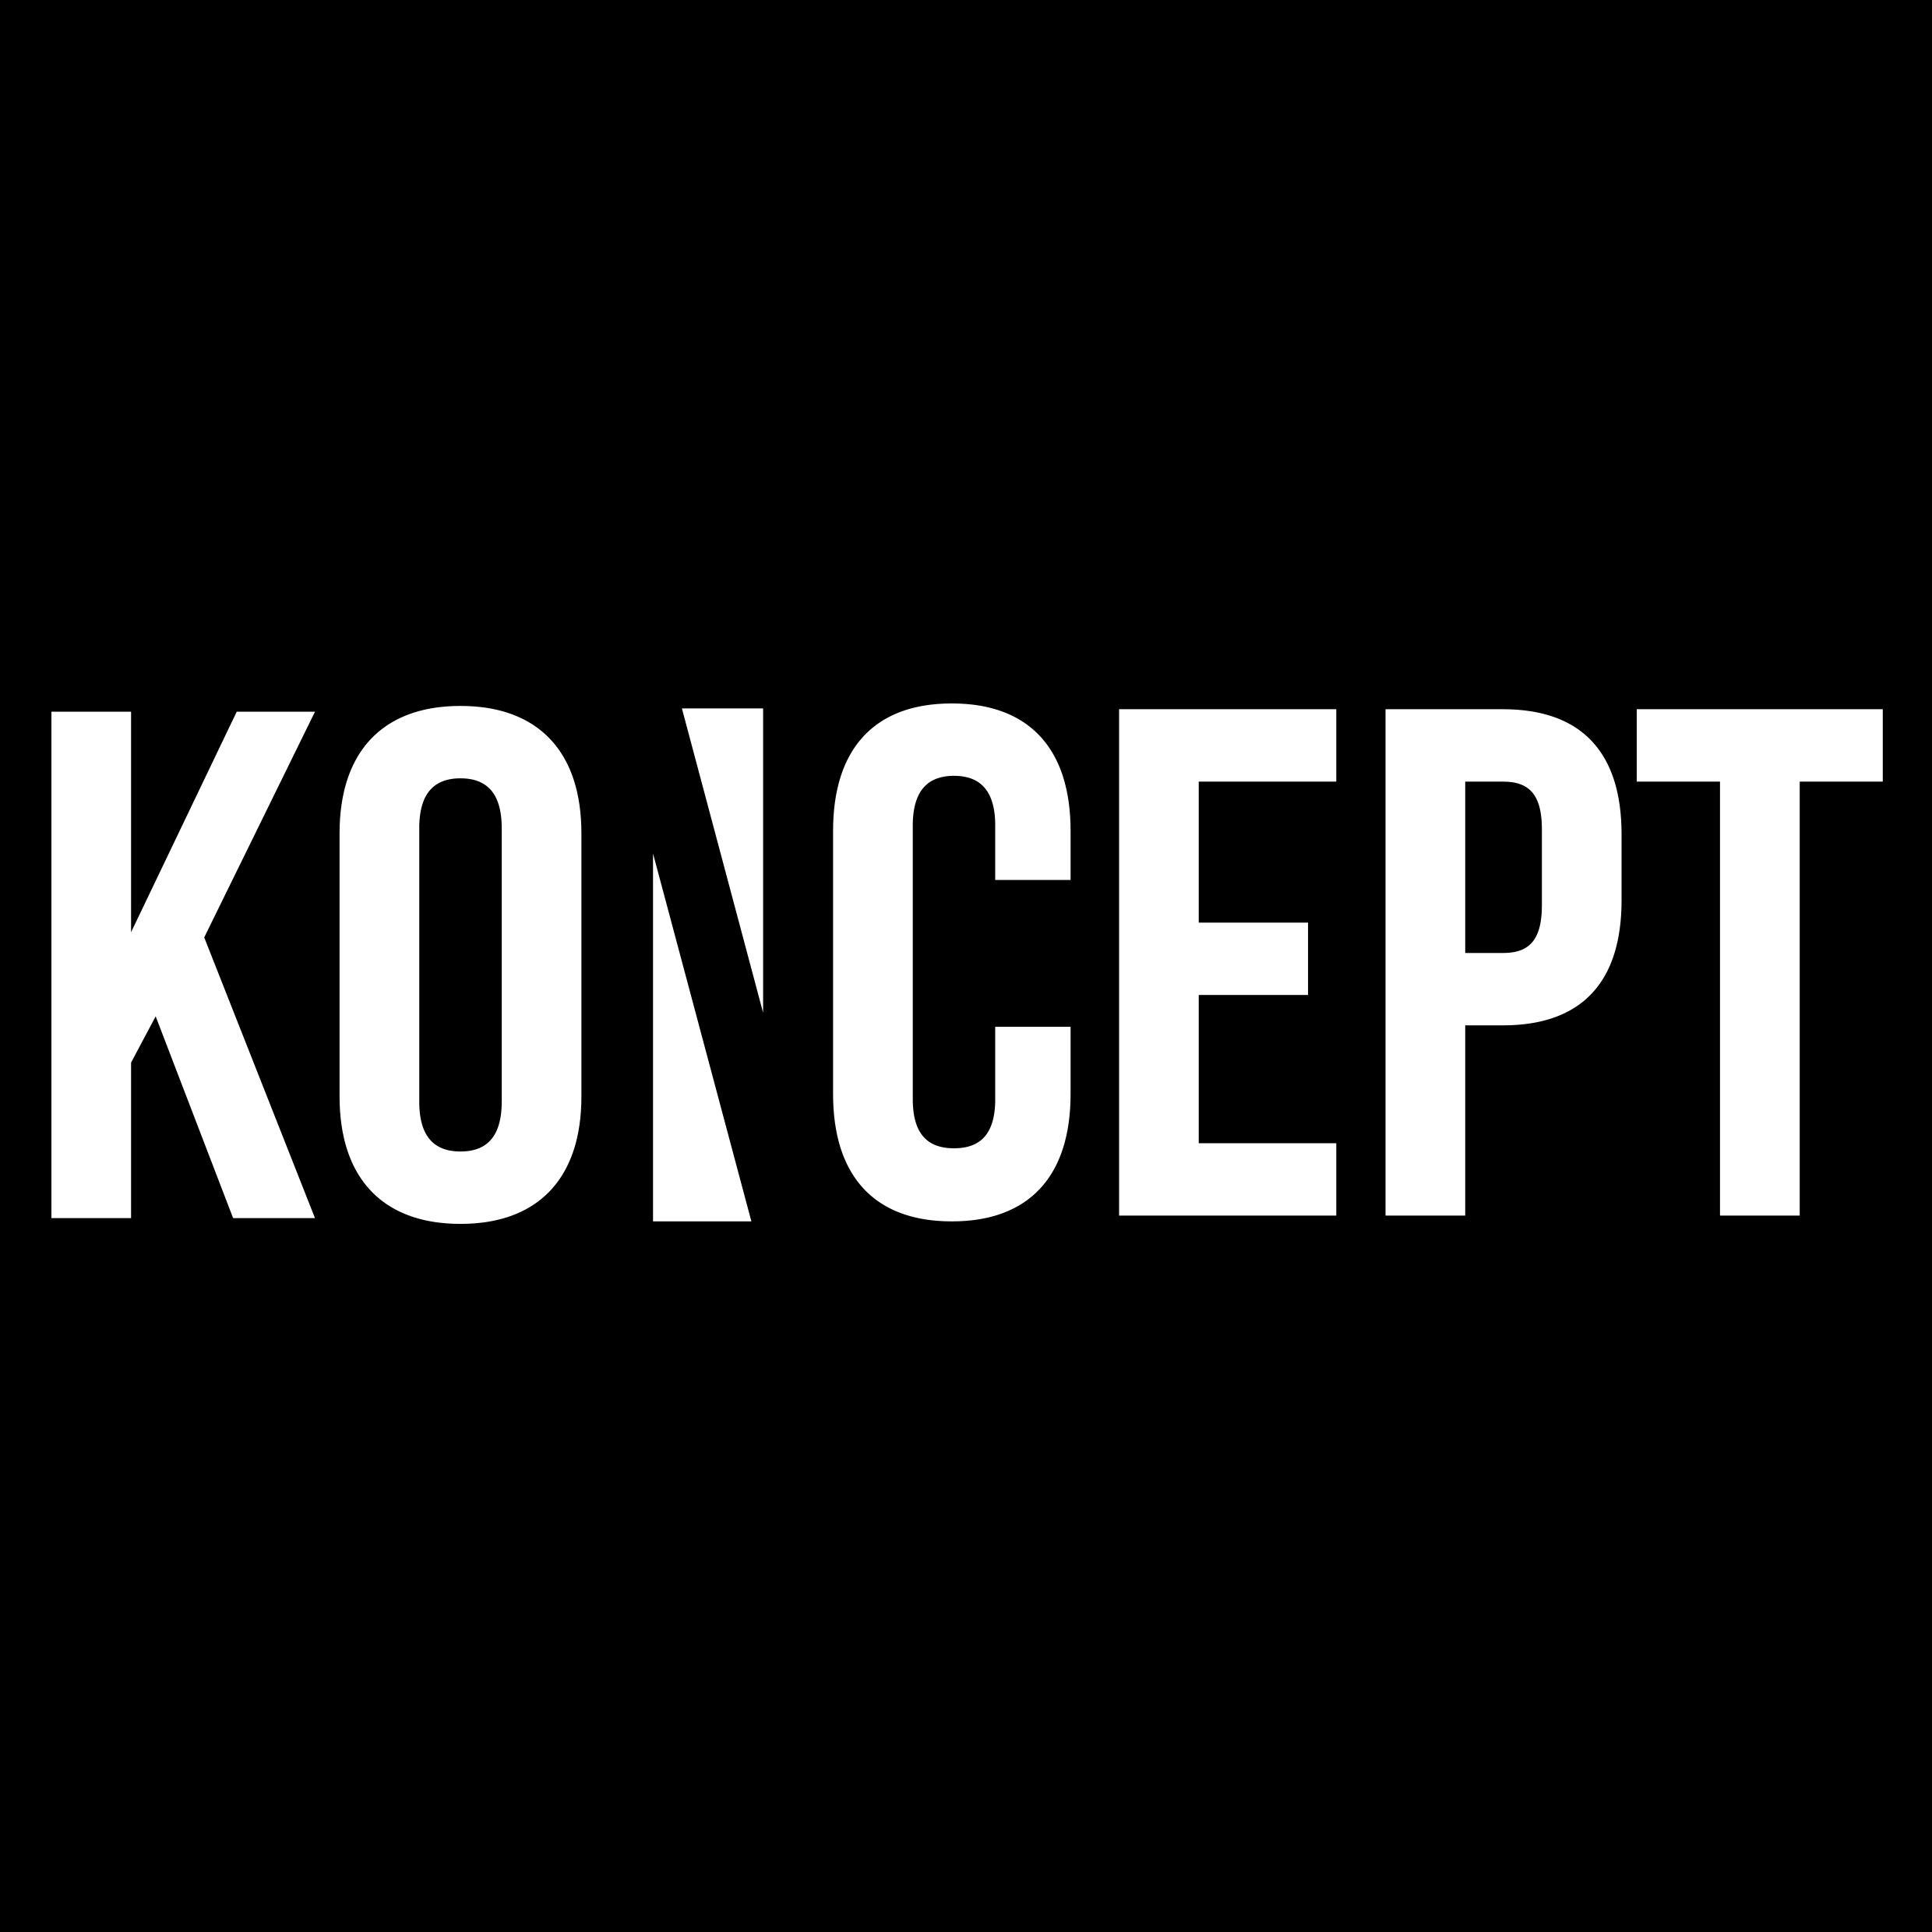 Image result for koncept